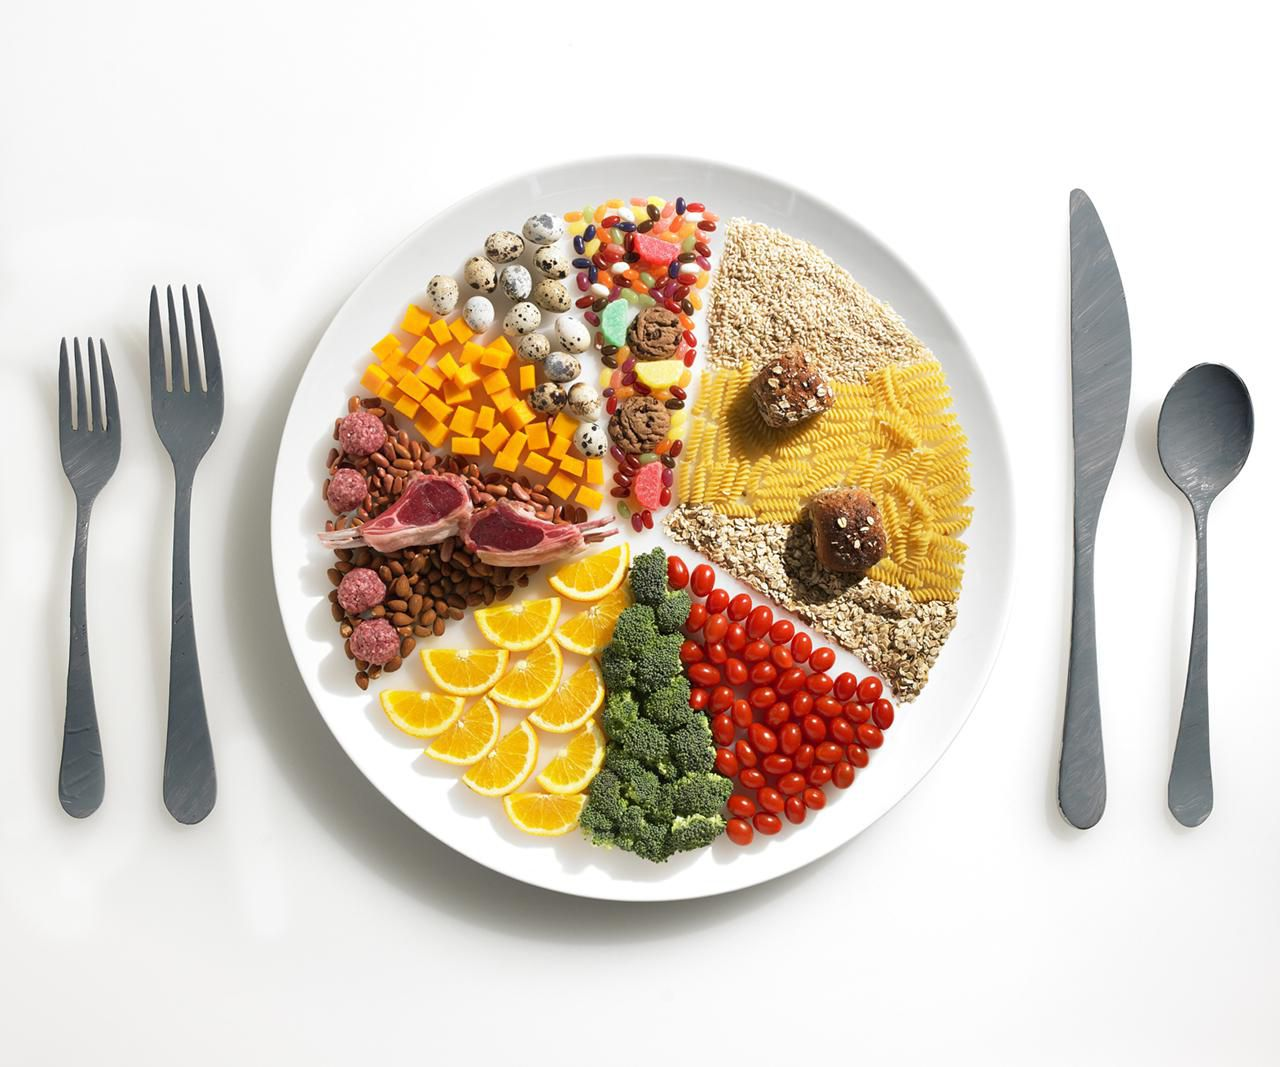 Plate with food divided into segments on a white table with flatware